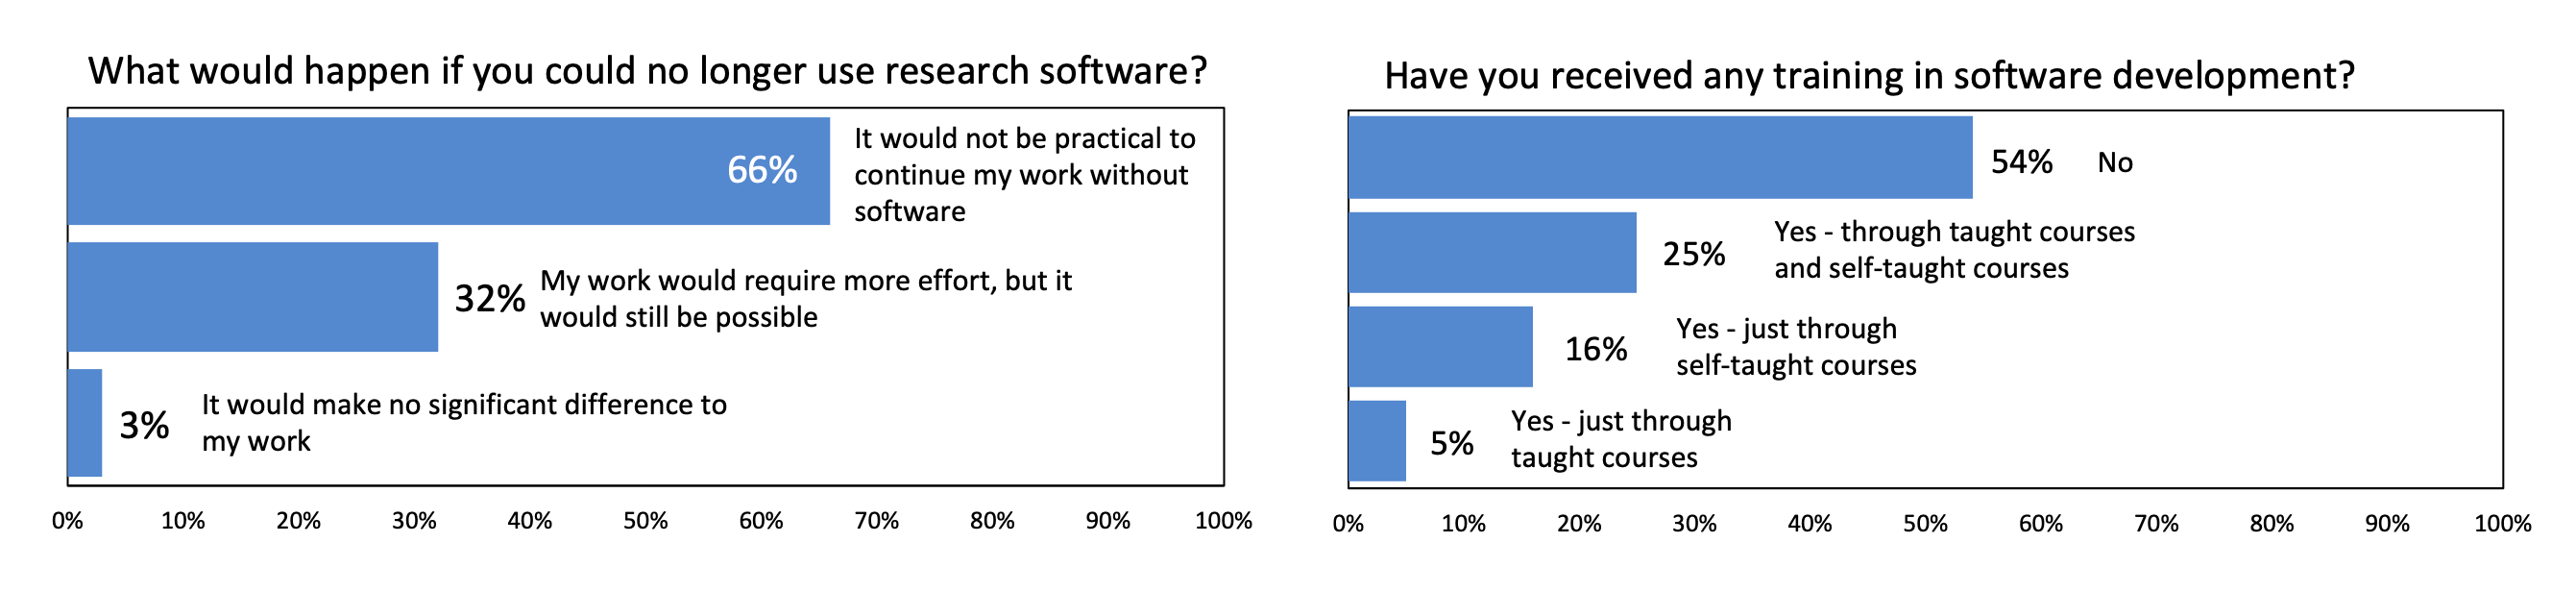 Results of Survey of US National Postdoctoral Association Regarding Software Use and Training in Research. Results exclude the 5% of respondents who reported they did not use research software